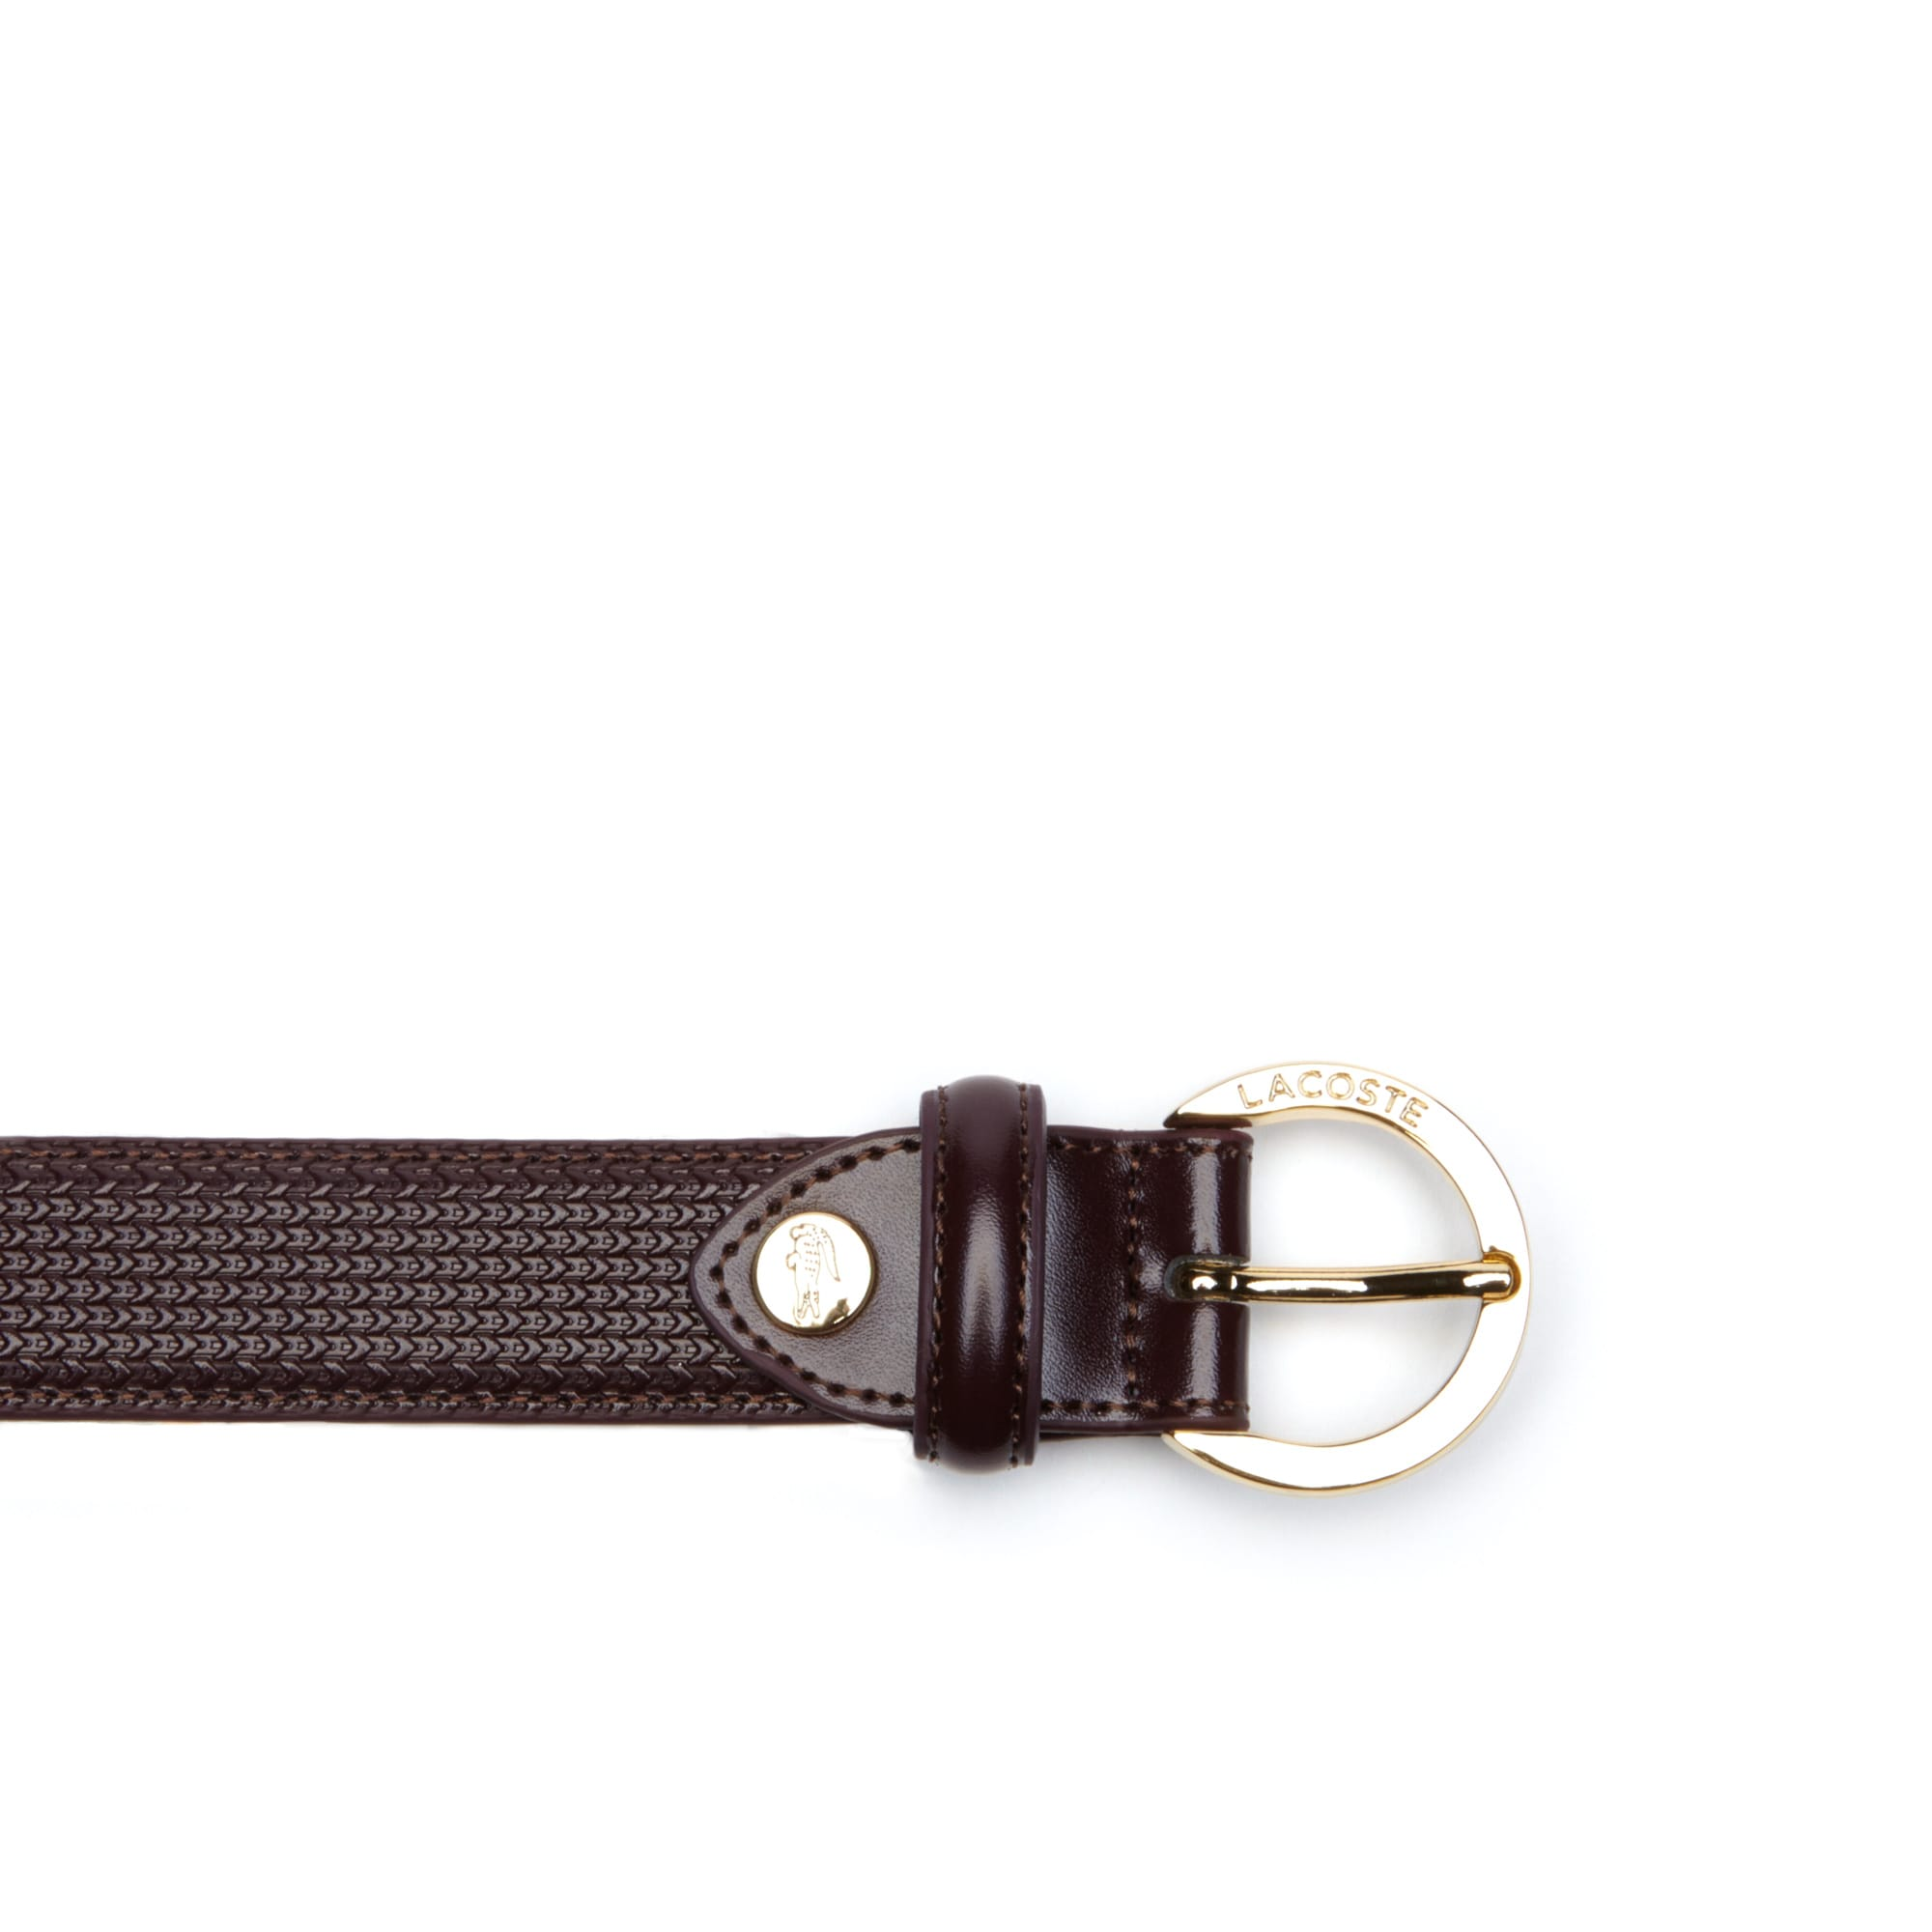 Lacoste - Women's Chantaco Lacoste Engraved Round Buckle Leather Belt - 2